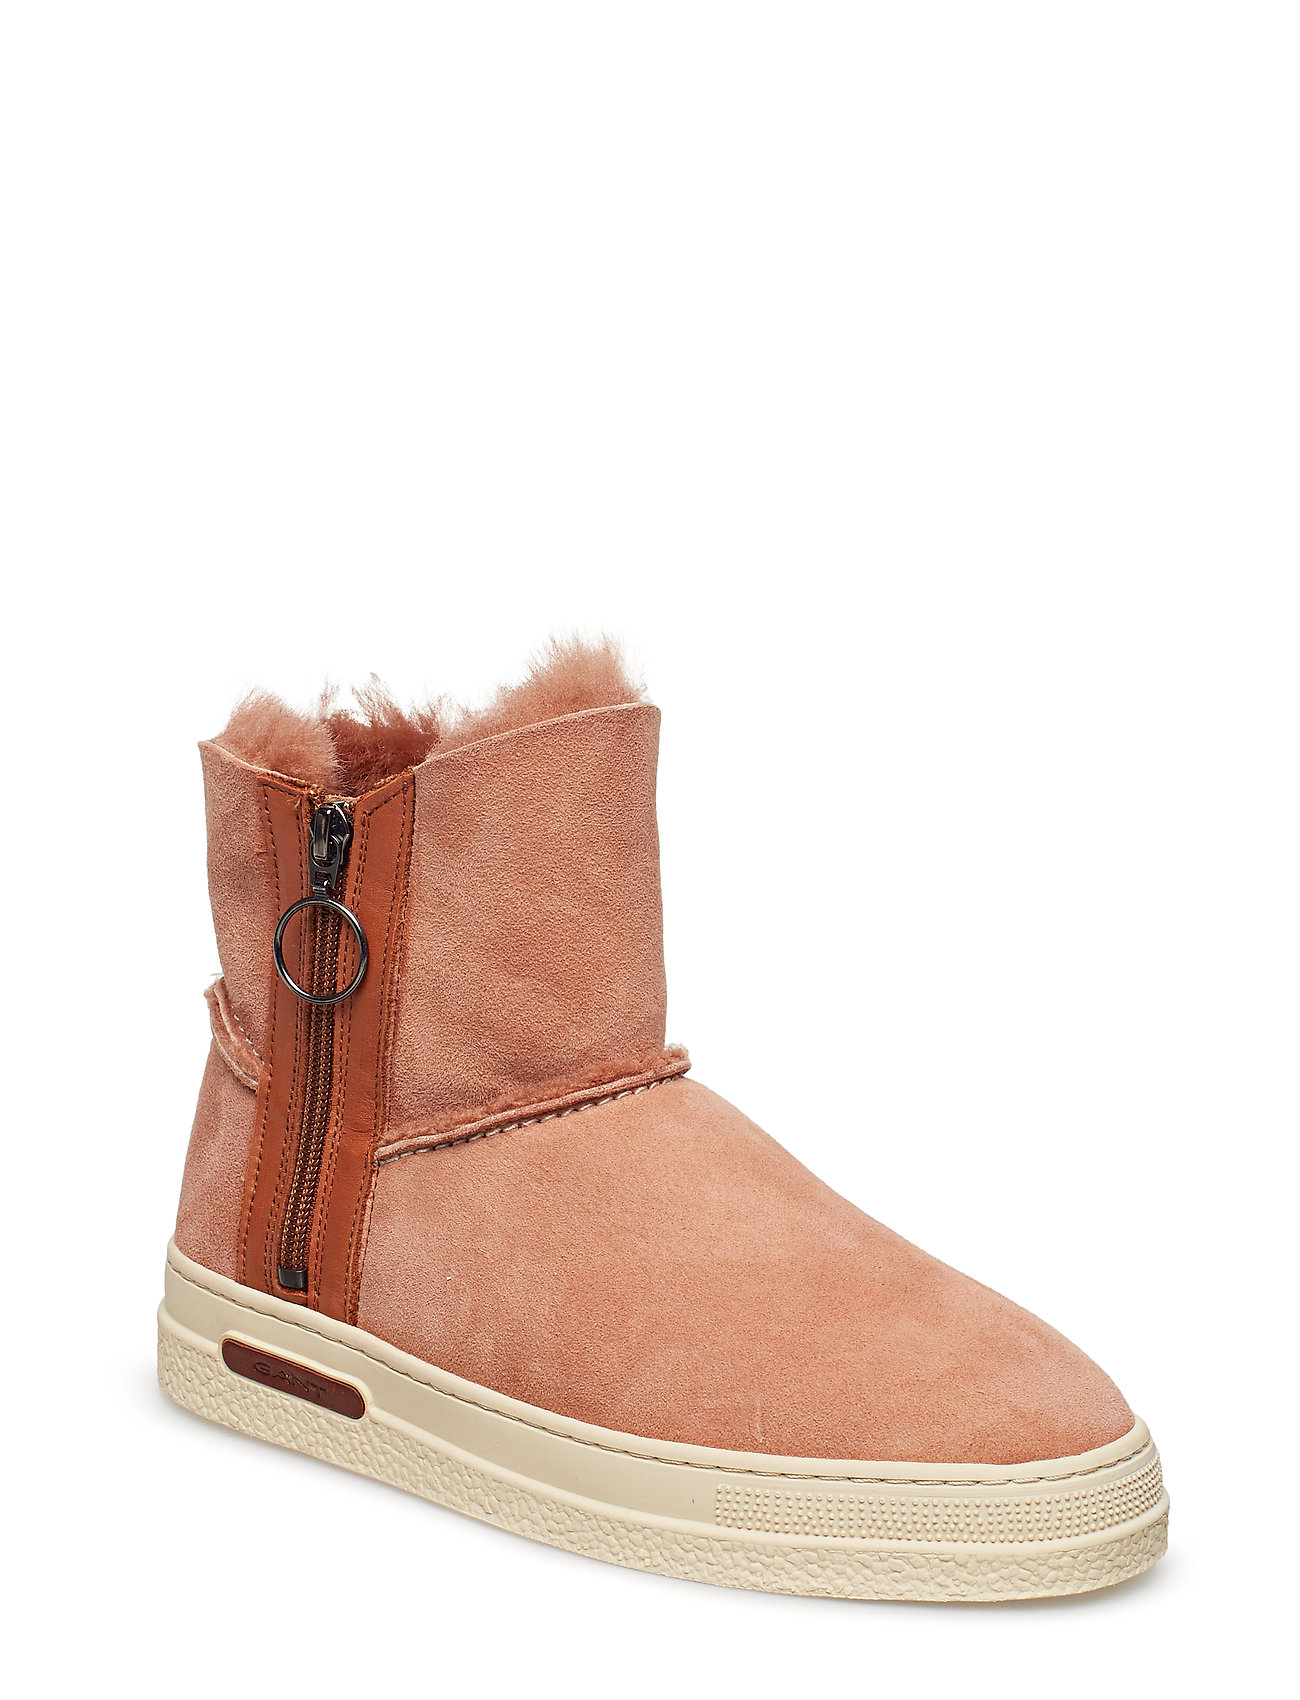 GANT Maria Mid Boot - DUSTY PINK